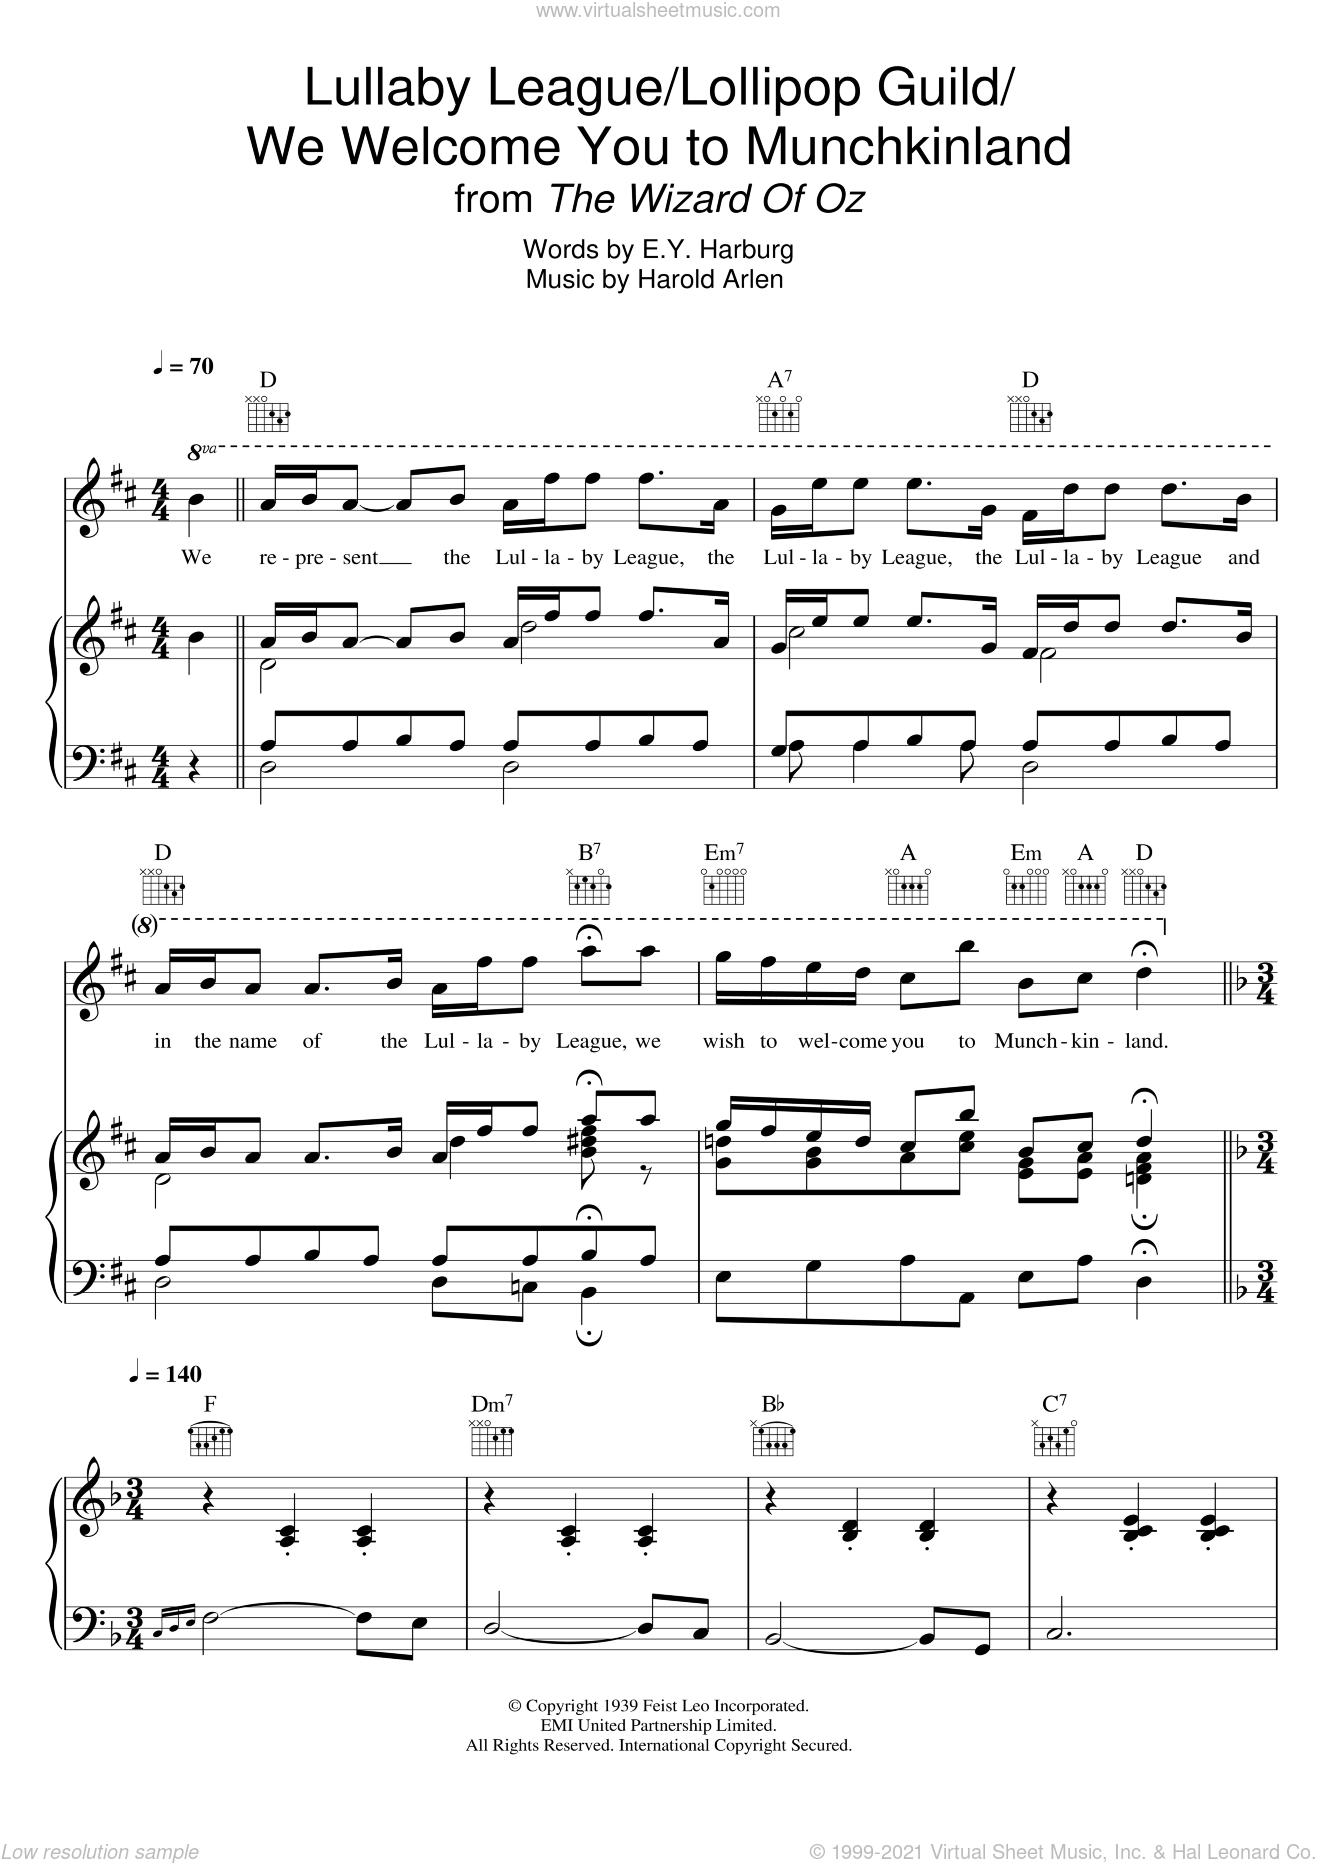 Lullaby League/Lollipop Guild/We Welcome You To Munchkinland (from 'The Wizard Of Oz') sheet music for voice, piano or guitar by Harold Arlen and E.Y. Harburg, intermediate. Score Image Preview.